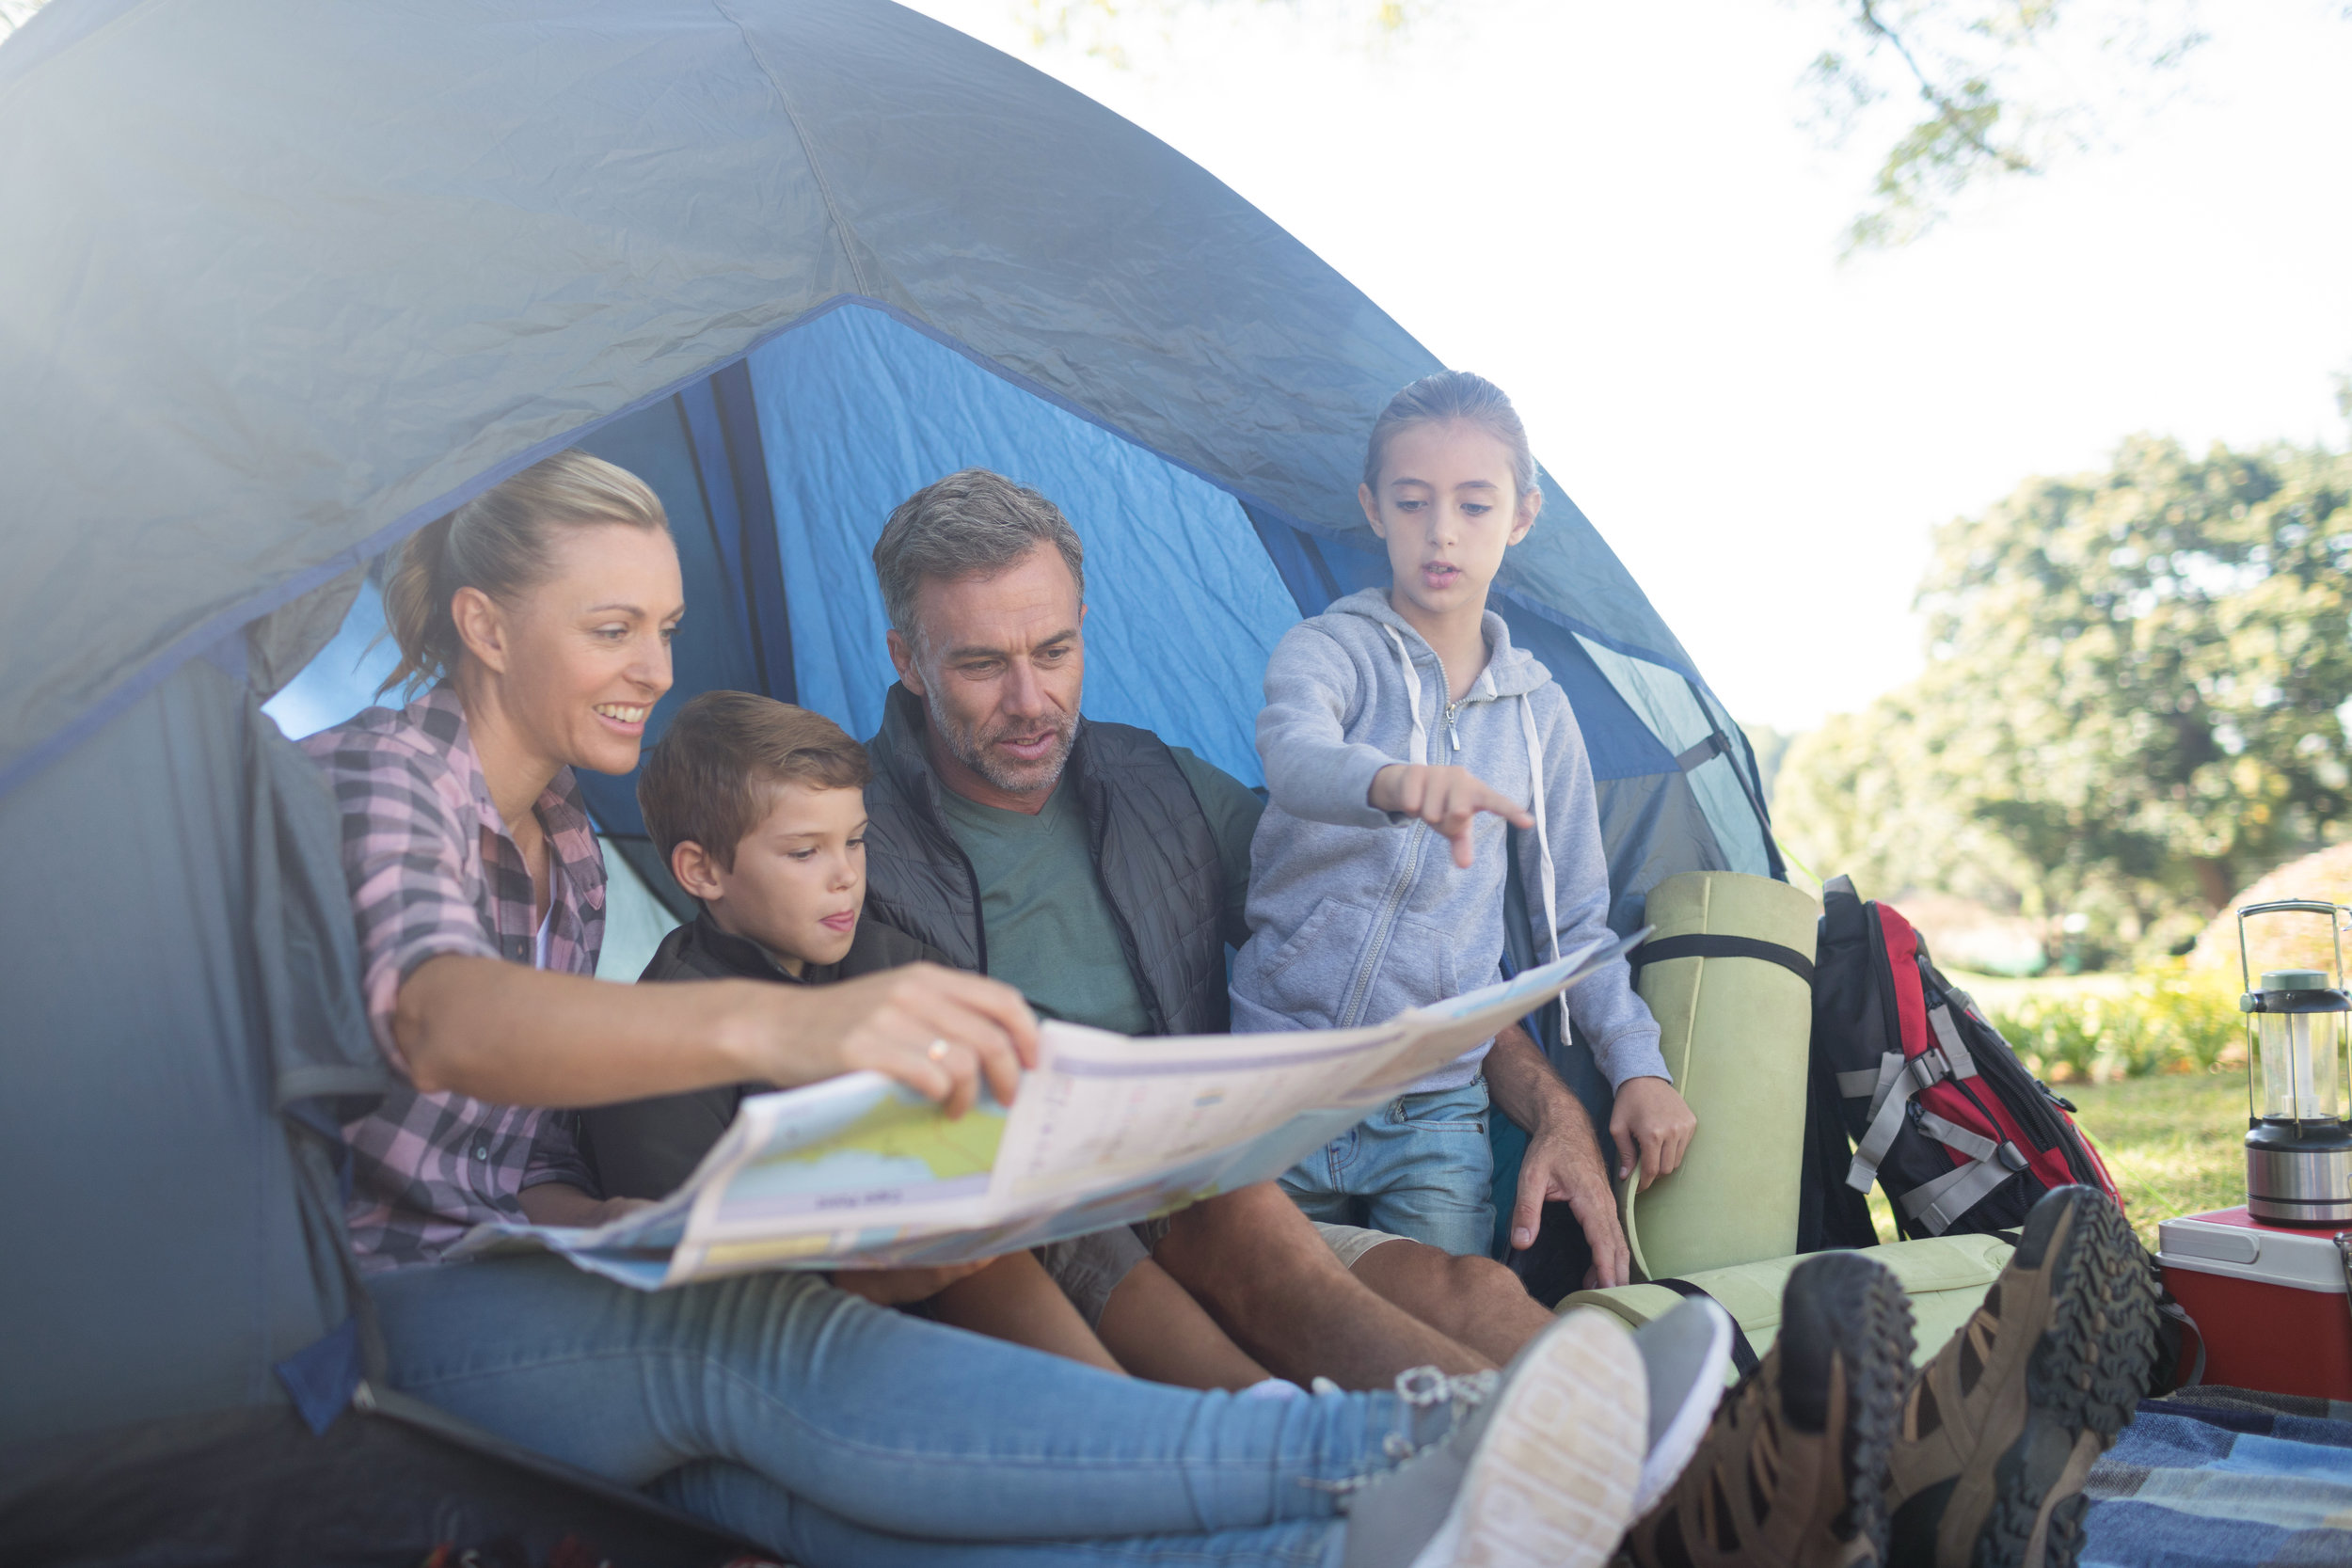 family-reading-the-map-in-tent-X3AKMUC.jpg